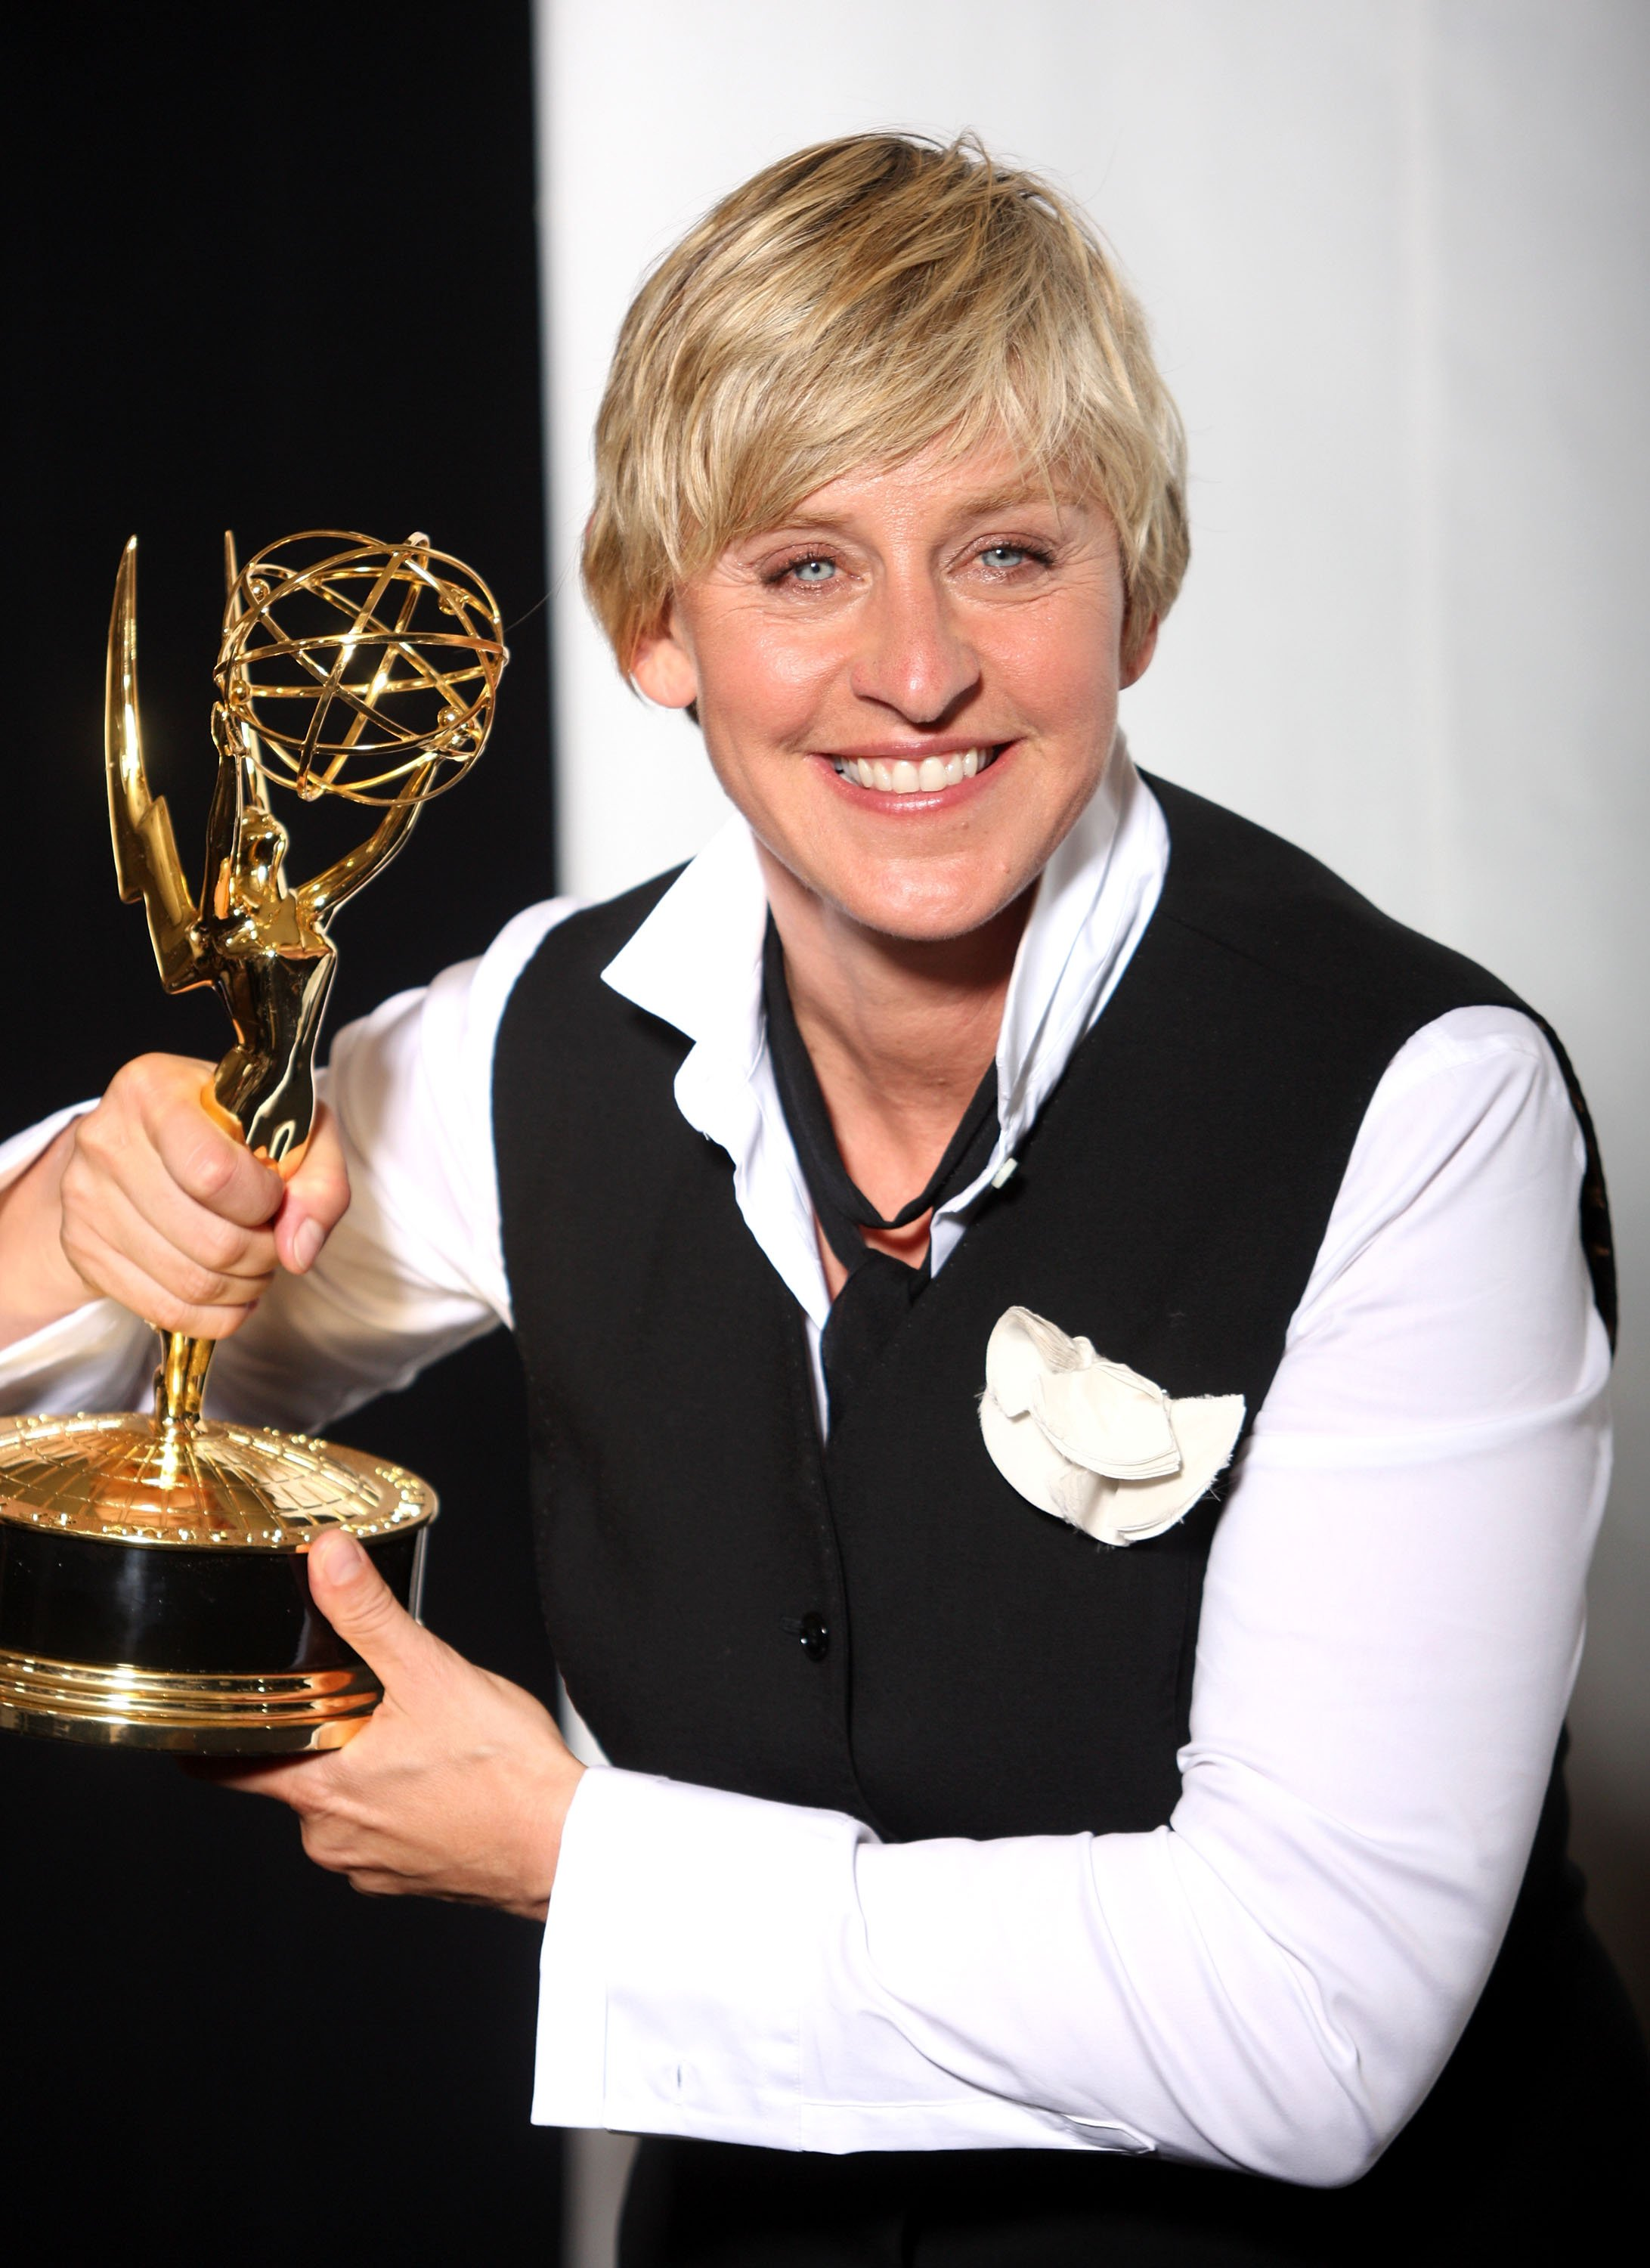 Ellen DeGeneres Image Sourc: Getty Images.